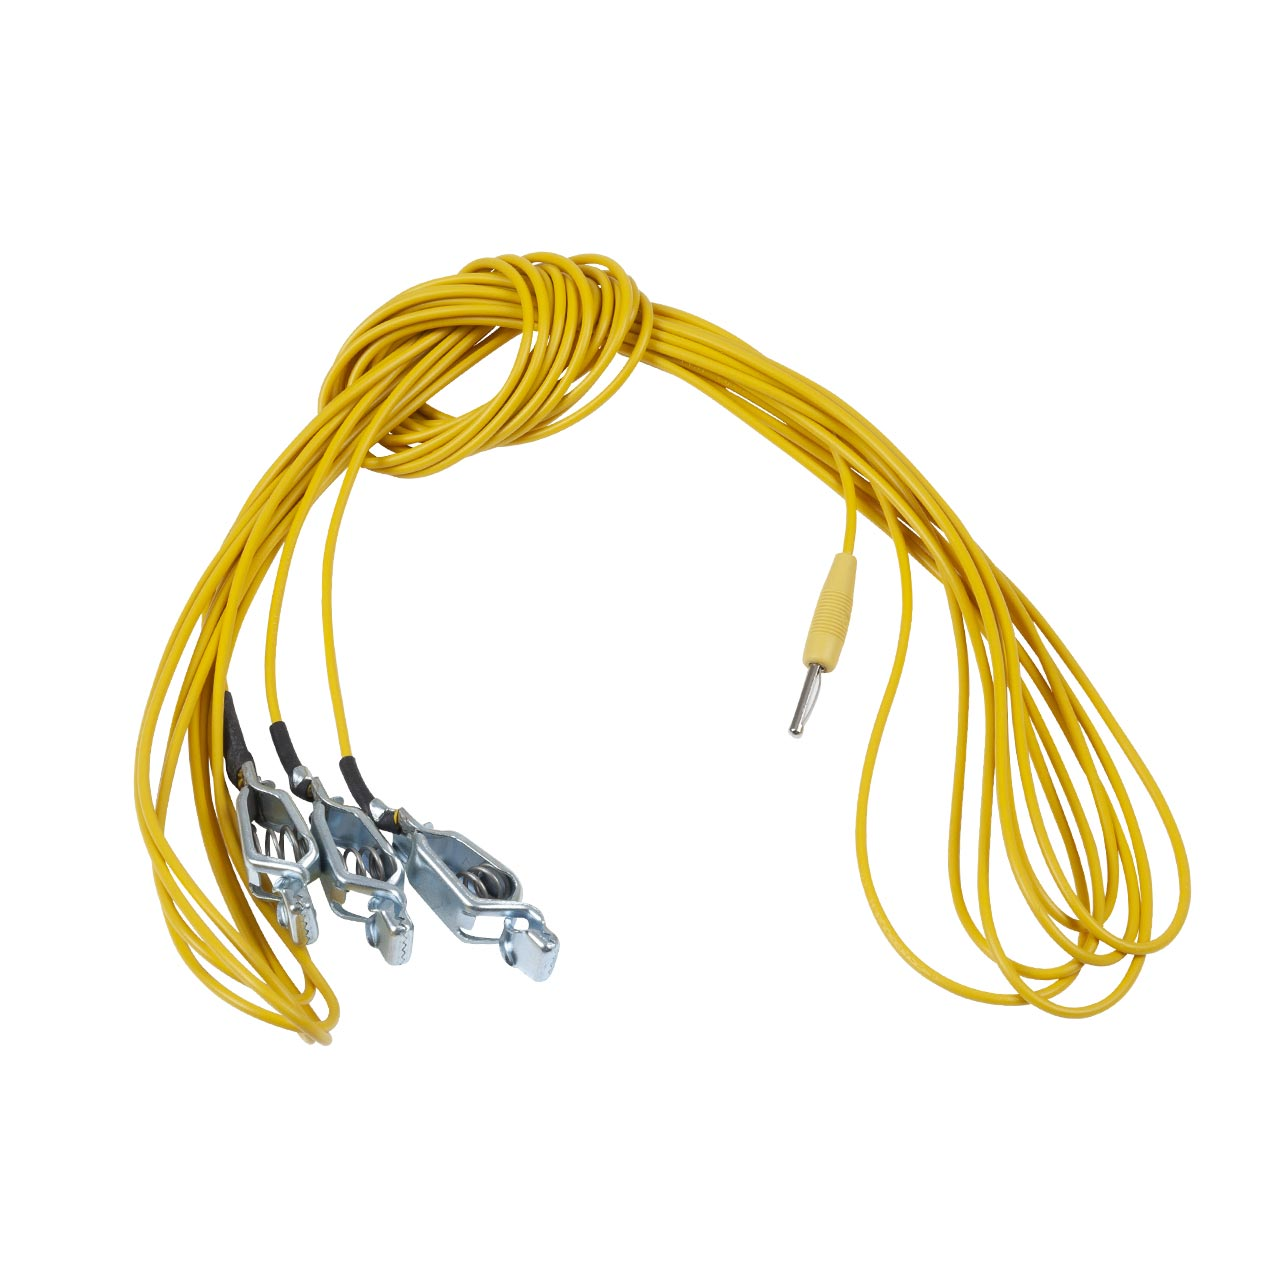 connection cord for wheelchair fencing